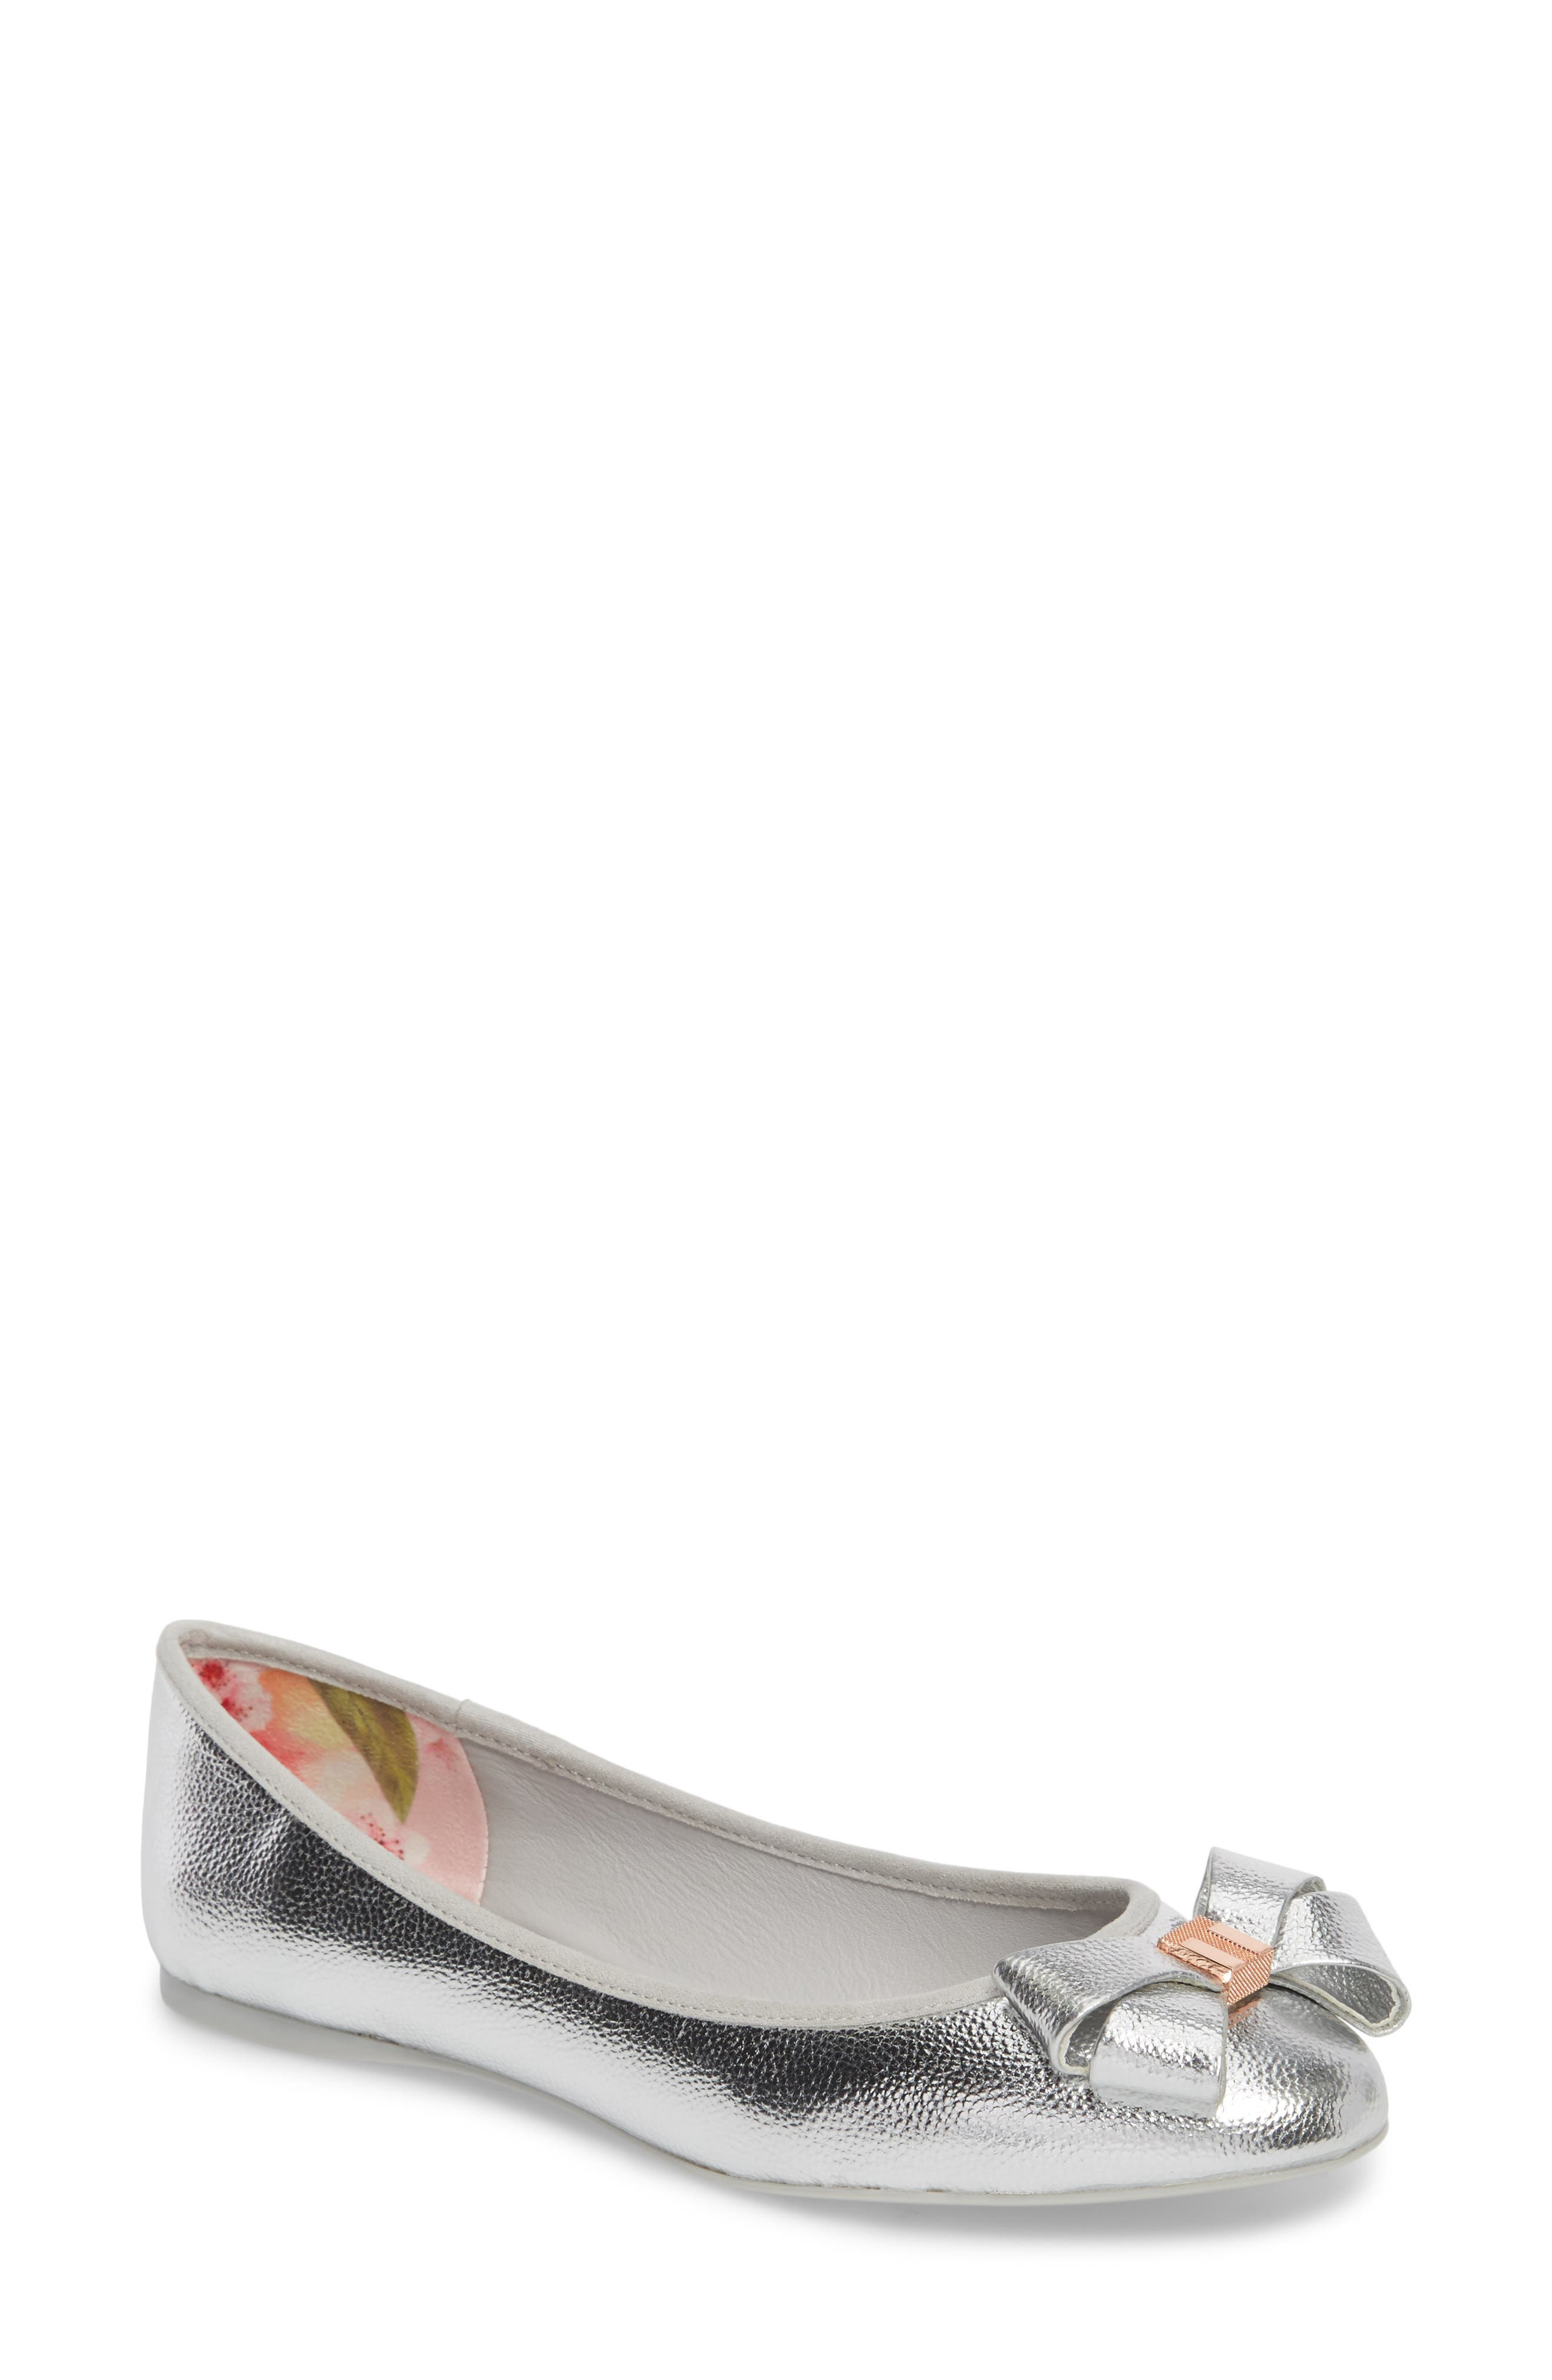 Immet Ballet Flat,                         Main,                         color, SILVER